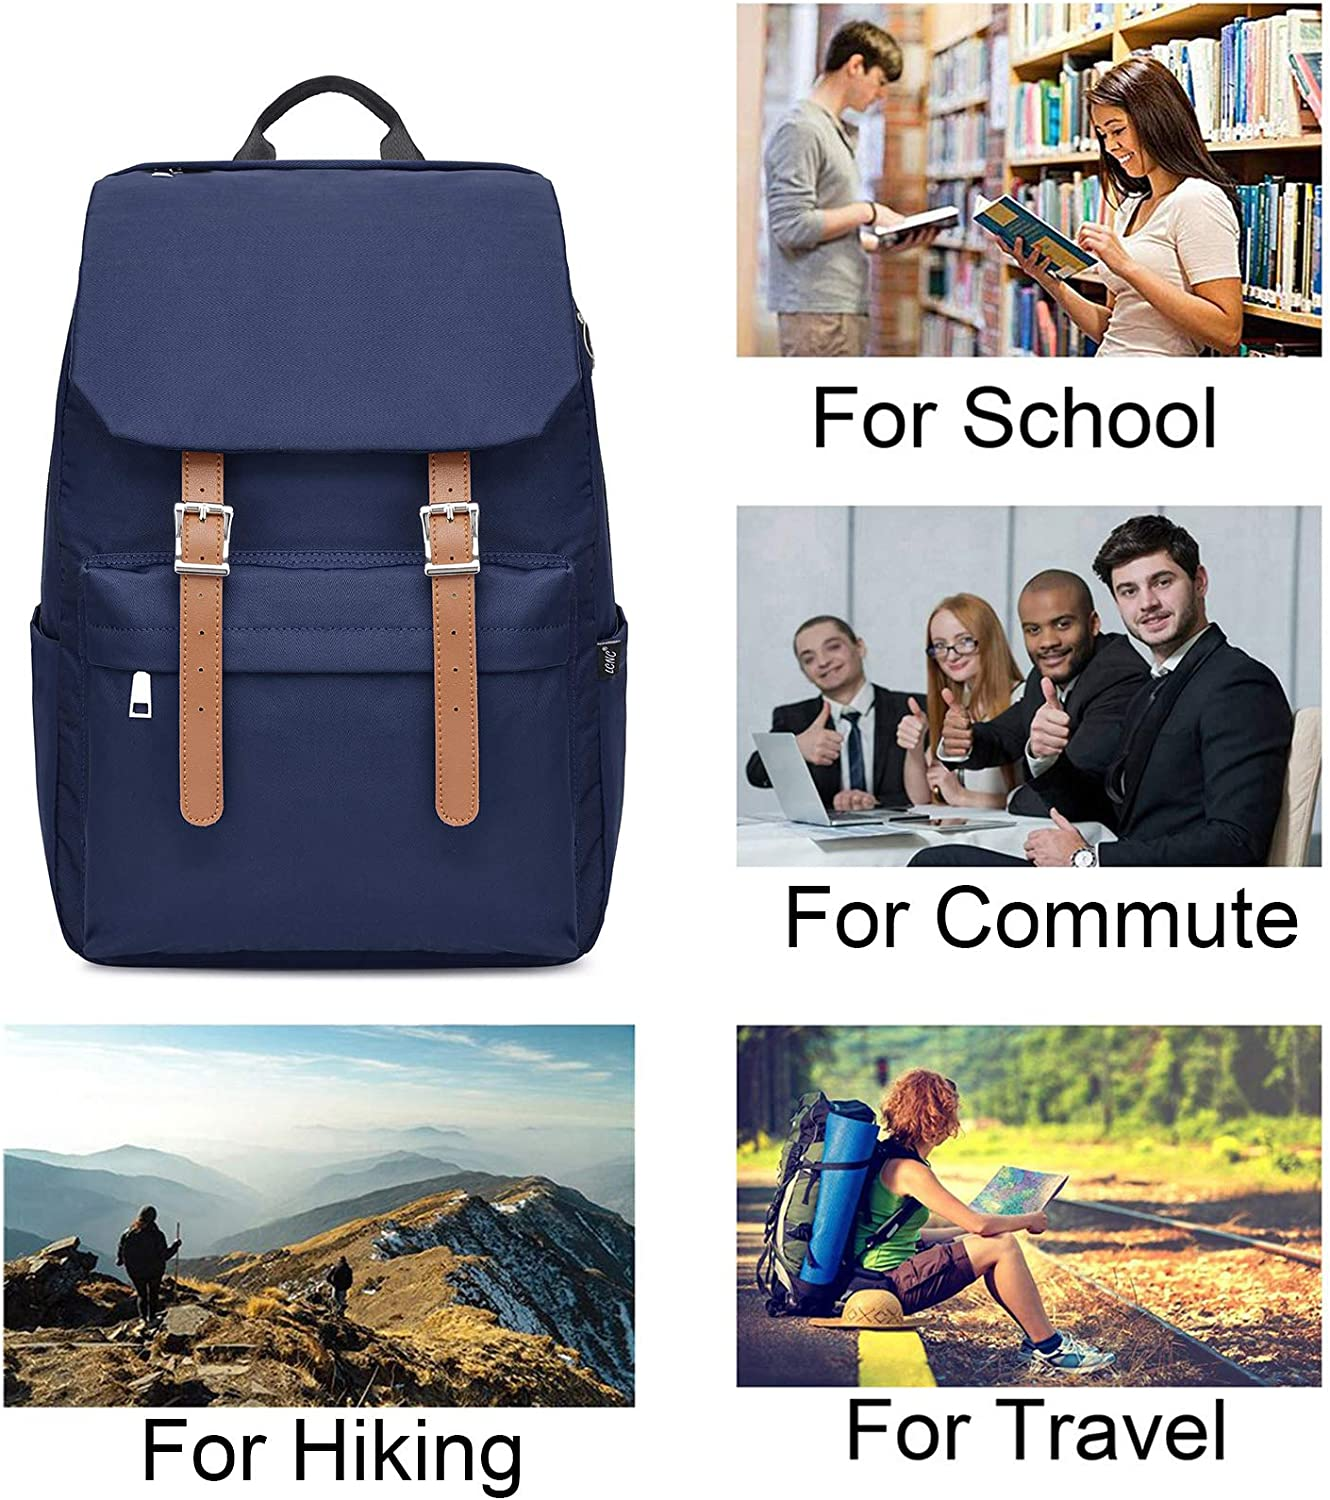 School Backpack,College Rucksack for Boys Girls Fits 14 inch Laptop,Water-Resistant Travel Casual Daypacks for Men Women